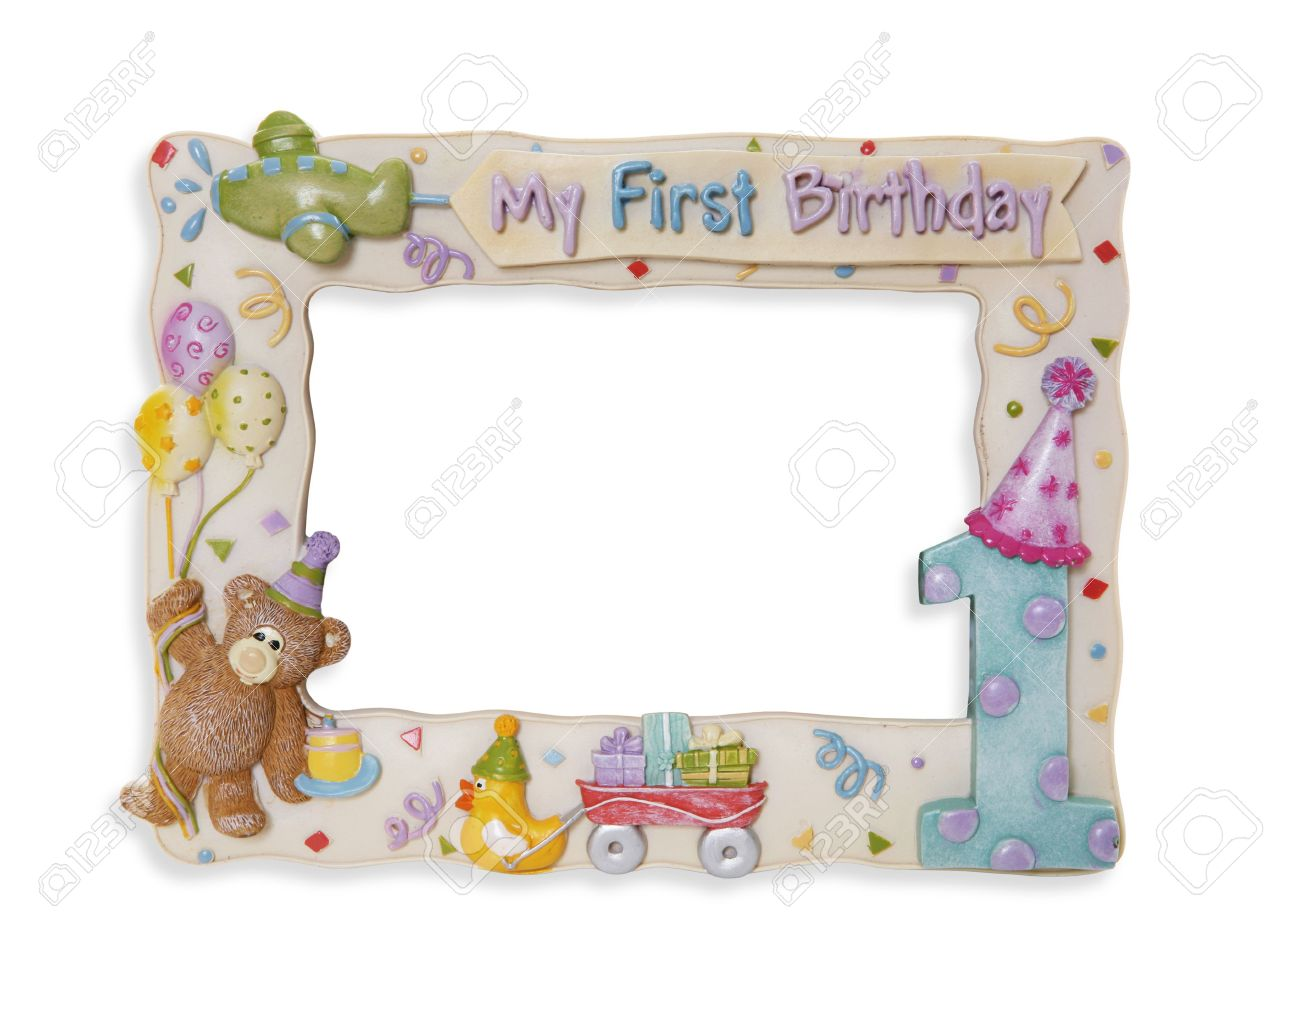 A Colorful First Birthday Picture Frame Over White Stock Photo ...